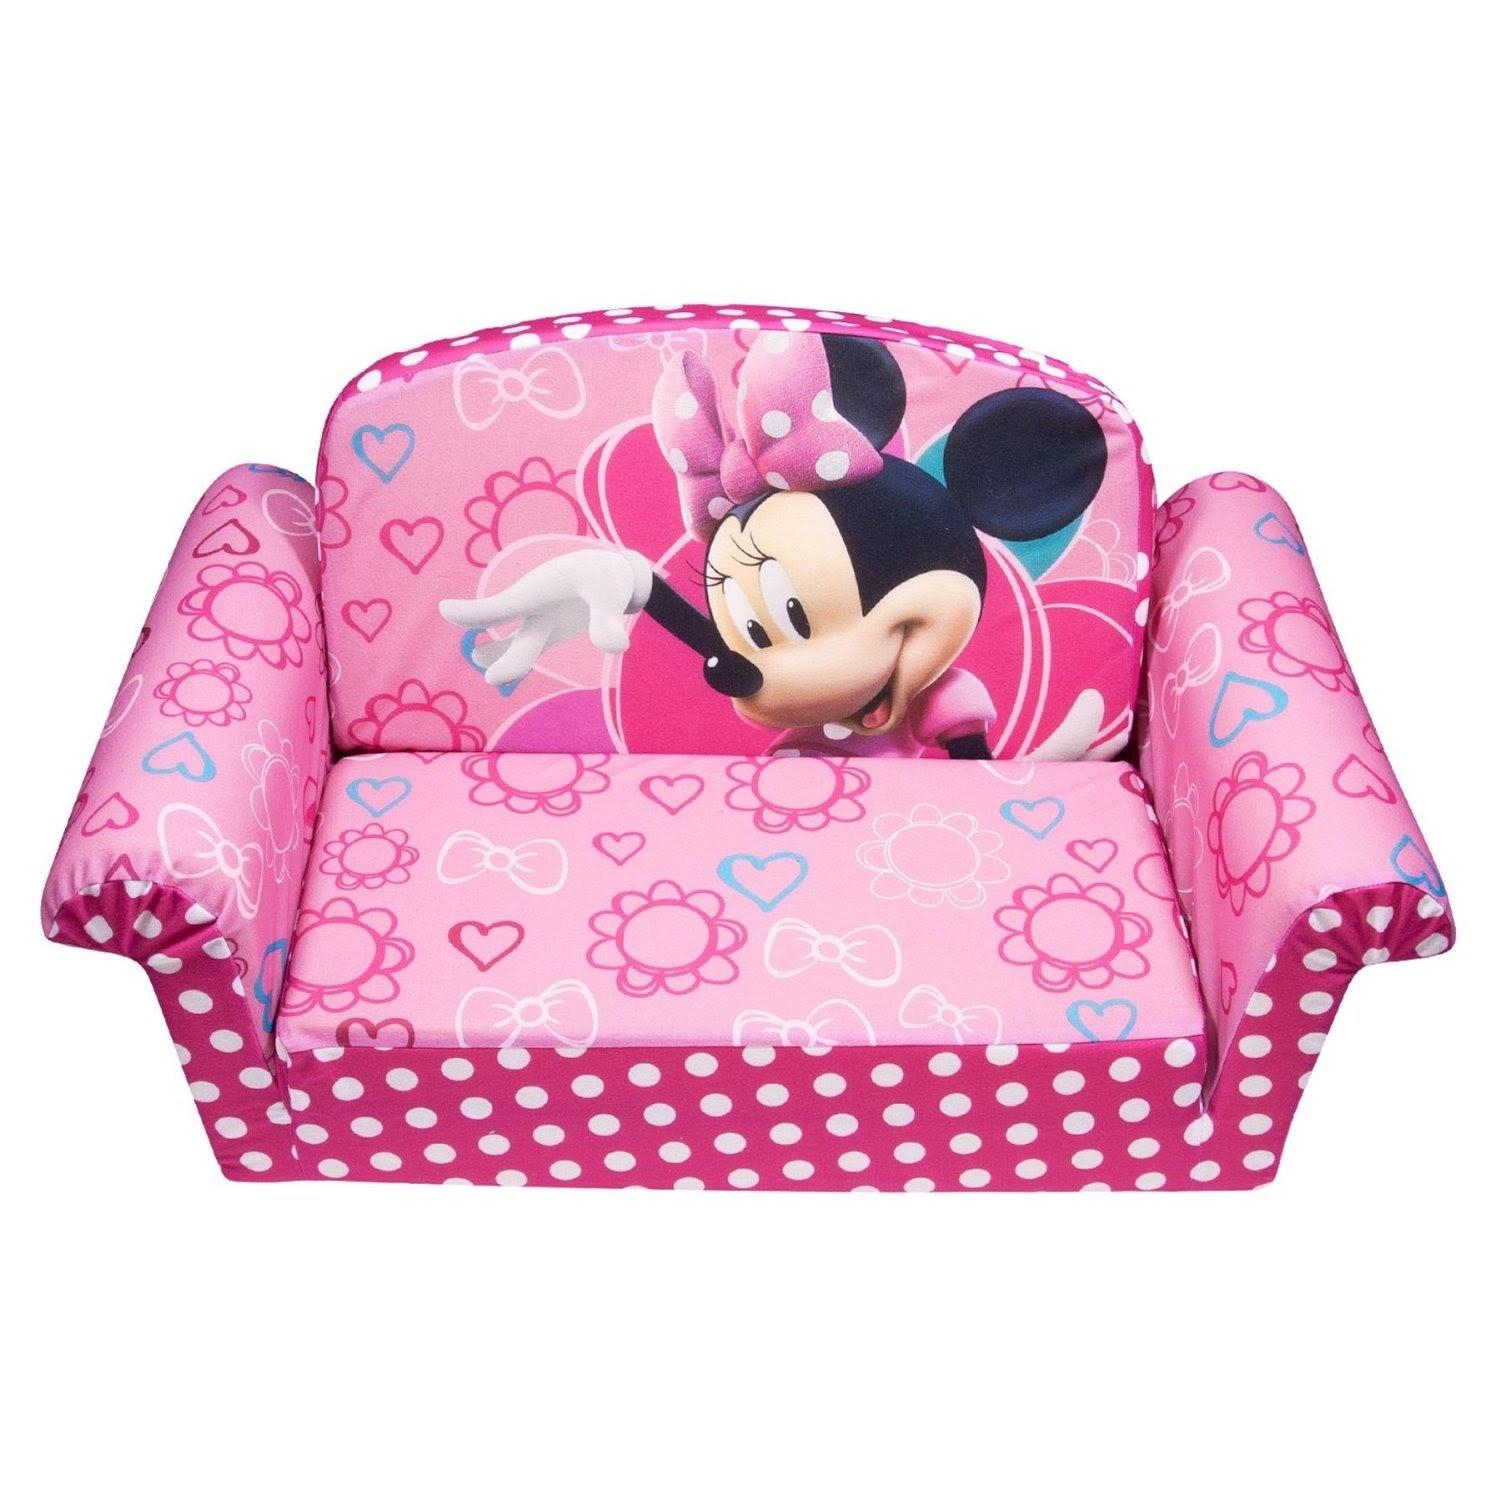 Review: Marshmallow Children's Furniture – 2 In 1 Flip Open Sofa Inside Mickey Fold Out Couches (Image 8 of 20)